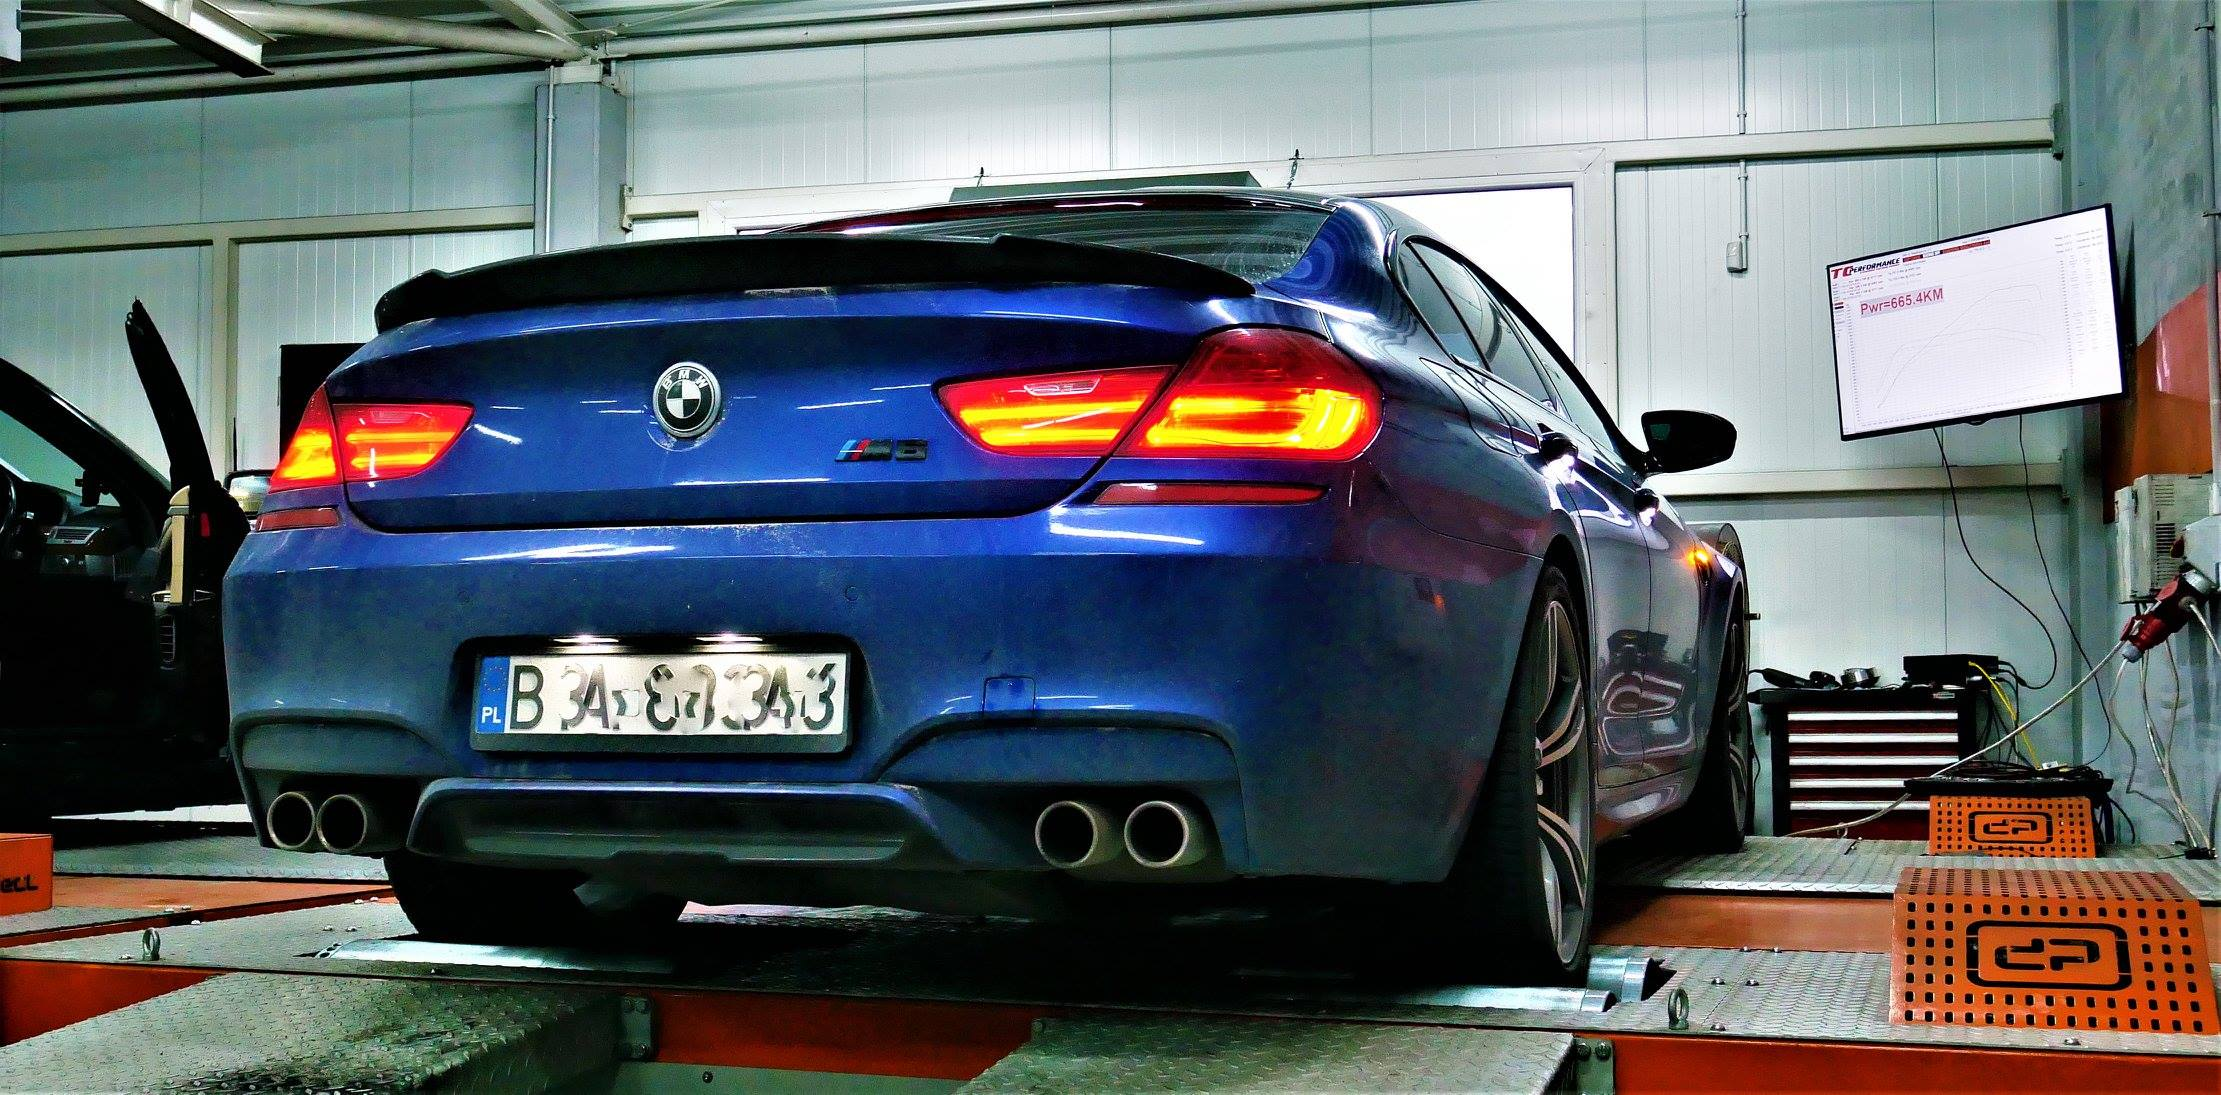 BMW M6 F13 F06 560KM 575KM STAGE1 CHIPTUNING